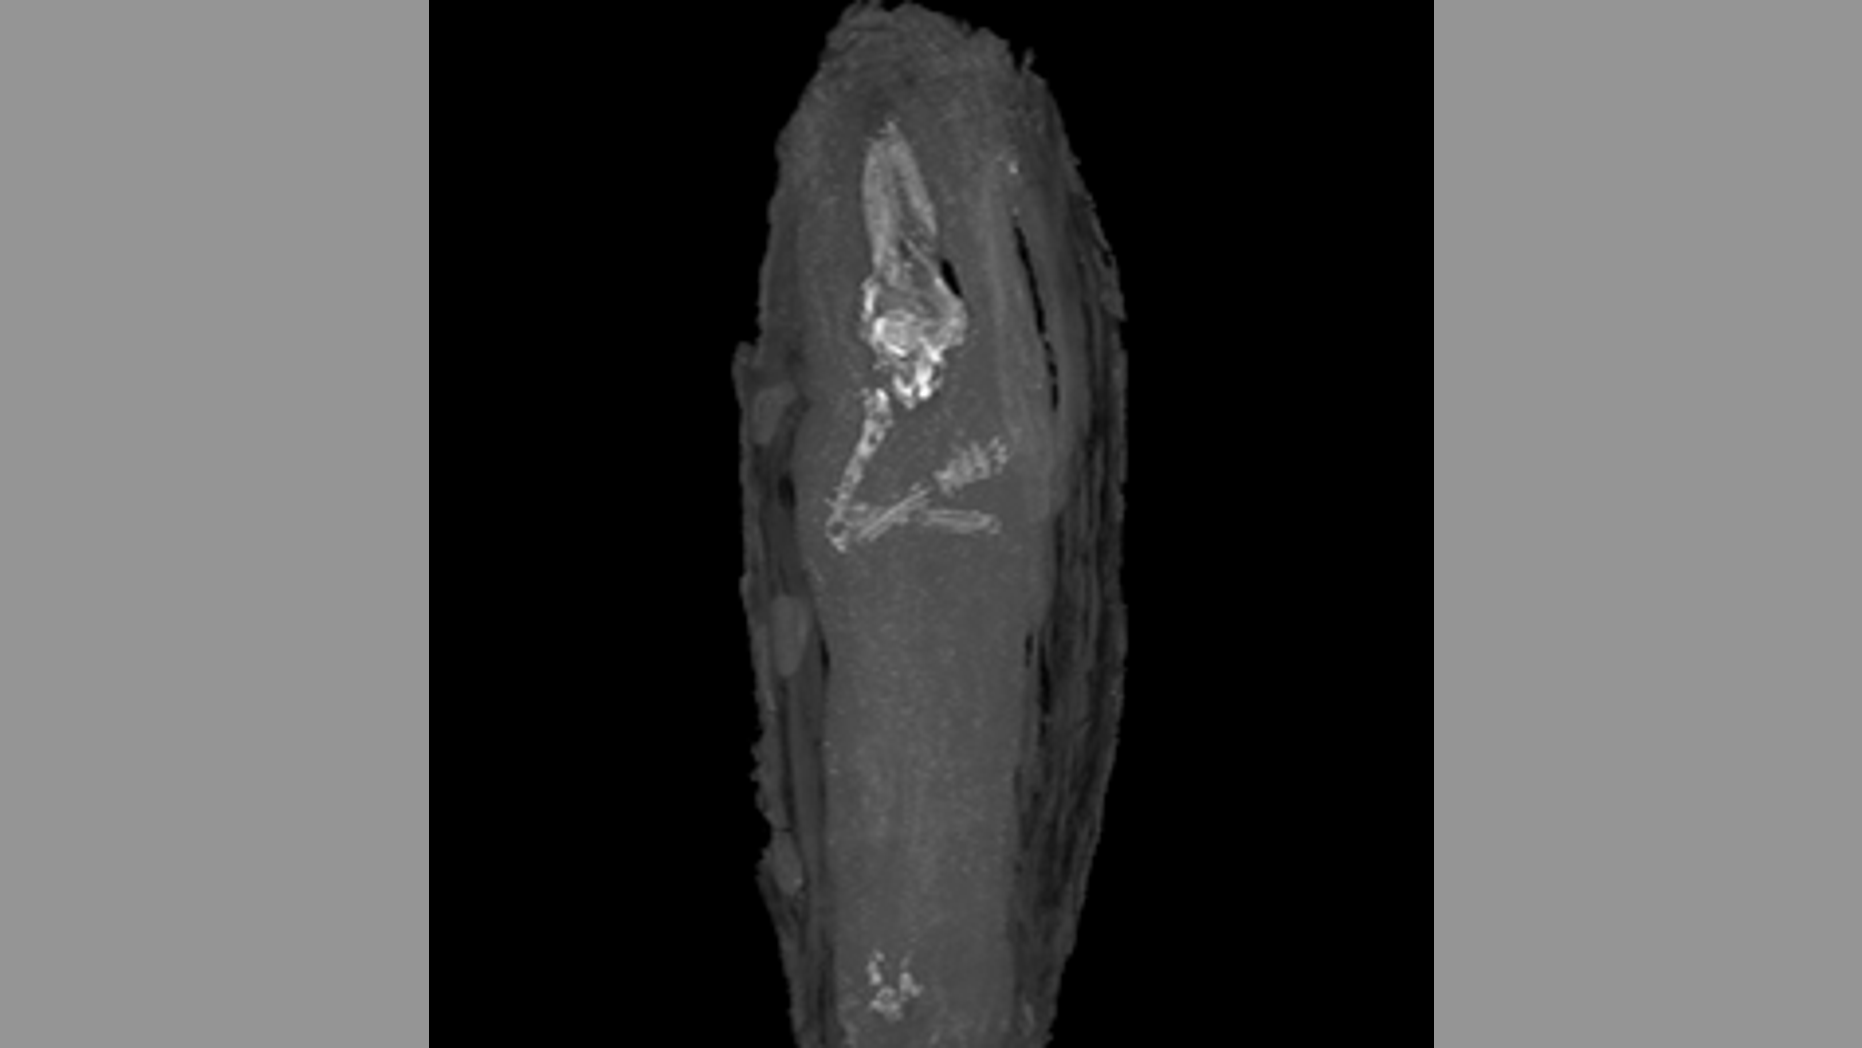 Micro CT scan image of the upper limbs and skull of fetus. (The Fitzwilliam Museum, Cambridge)